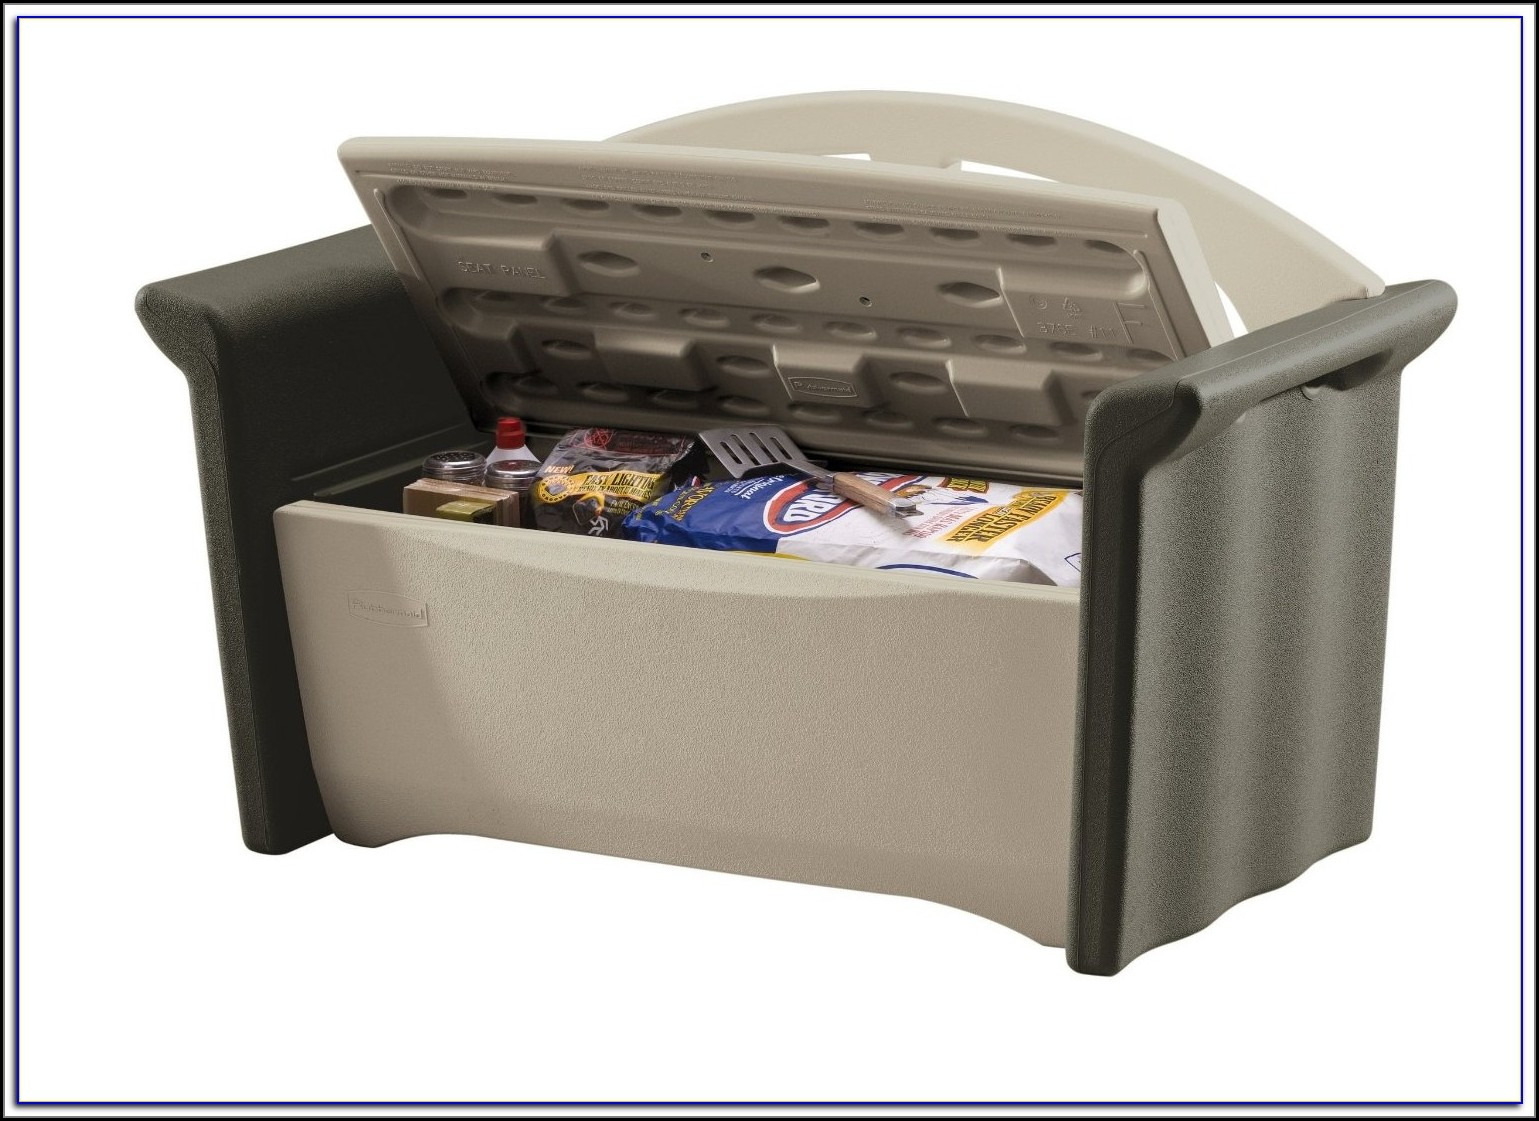 Rubbermaid Patio Storage Bench Instructions